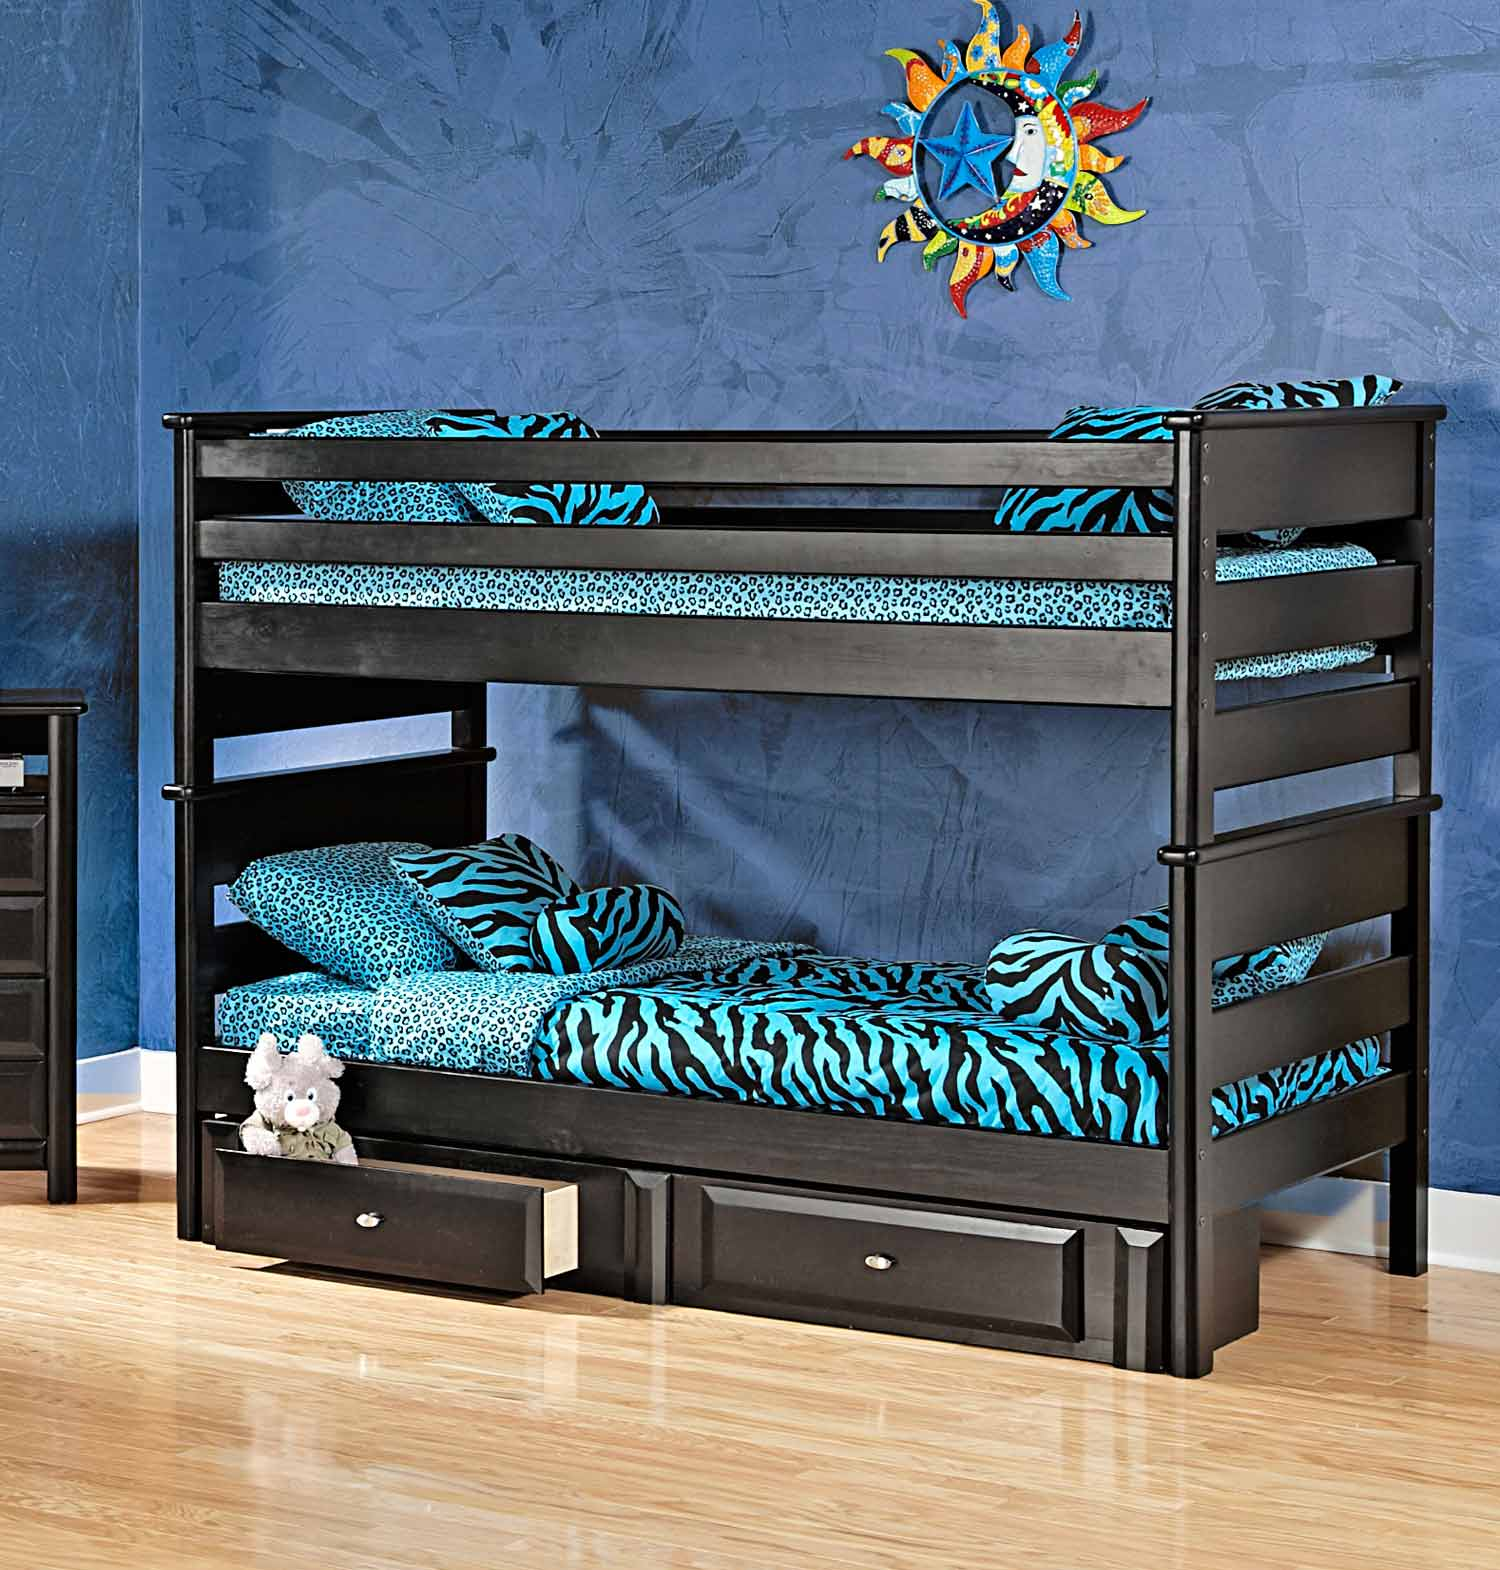 Chelsea Home 3534520-4521-S Twin Over Twin Bunk Bed with Storage - Black Cherry